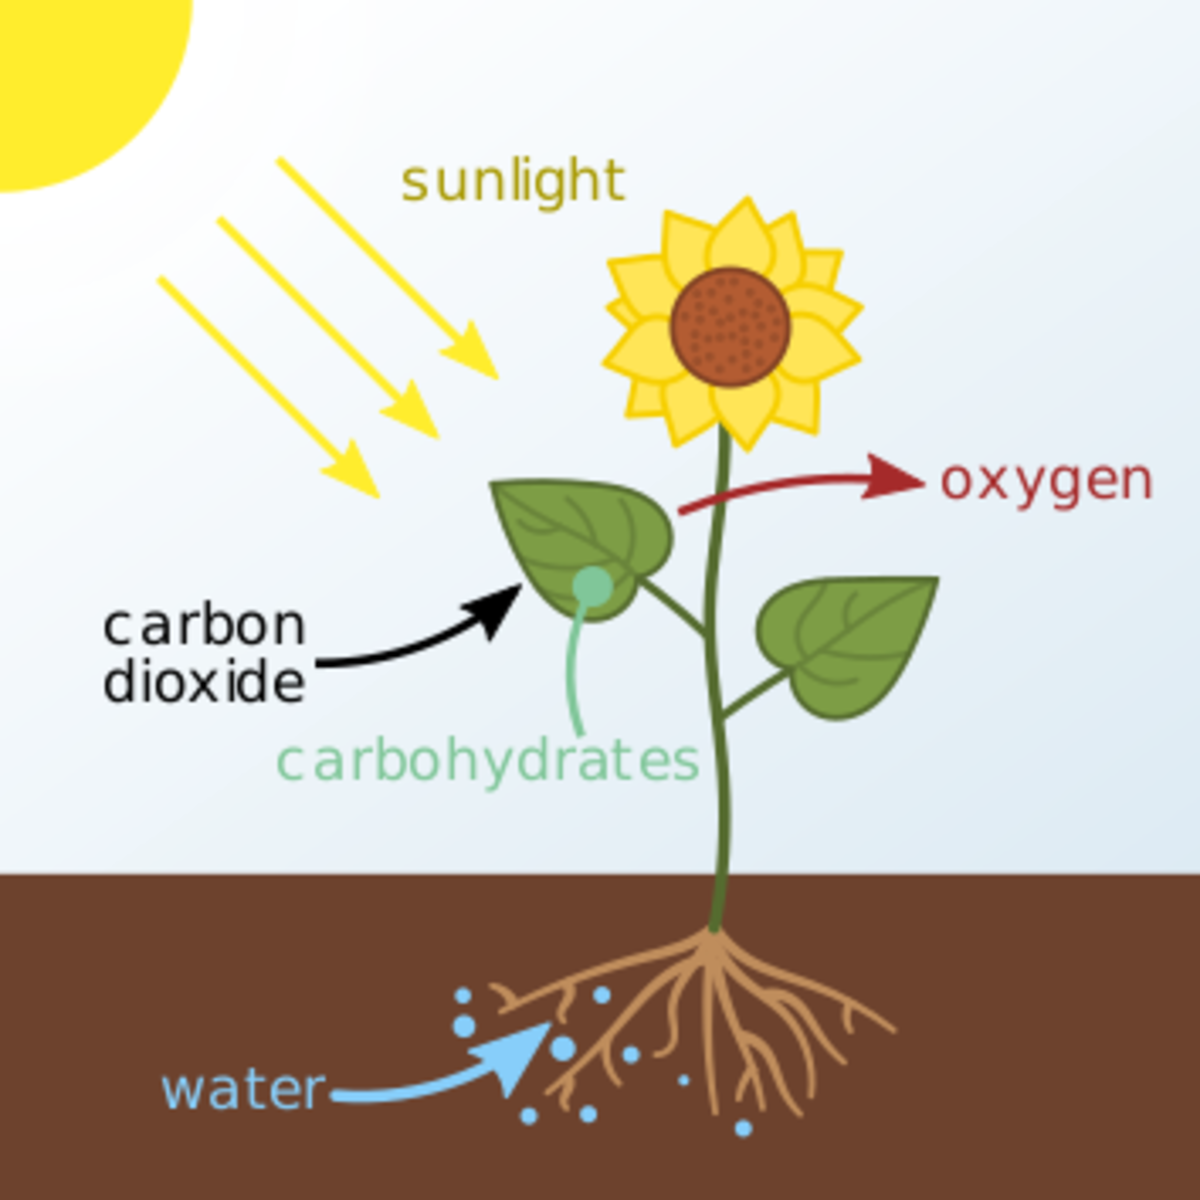 Here's a simple diagram that shows the process of photosynthesis. Water  (carrying nutrients) travels up the roots of a plant and interacts with other elements to produce sugars (food). Oxygen is left over, which the plant breathes out.